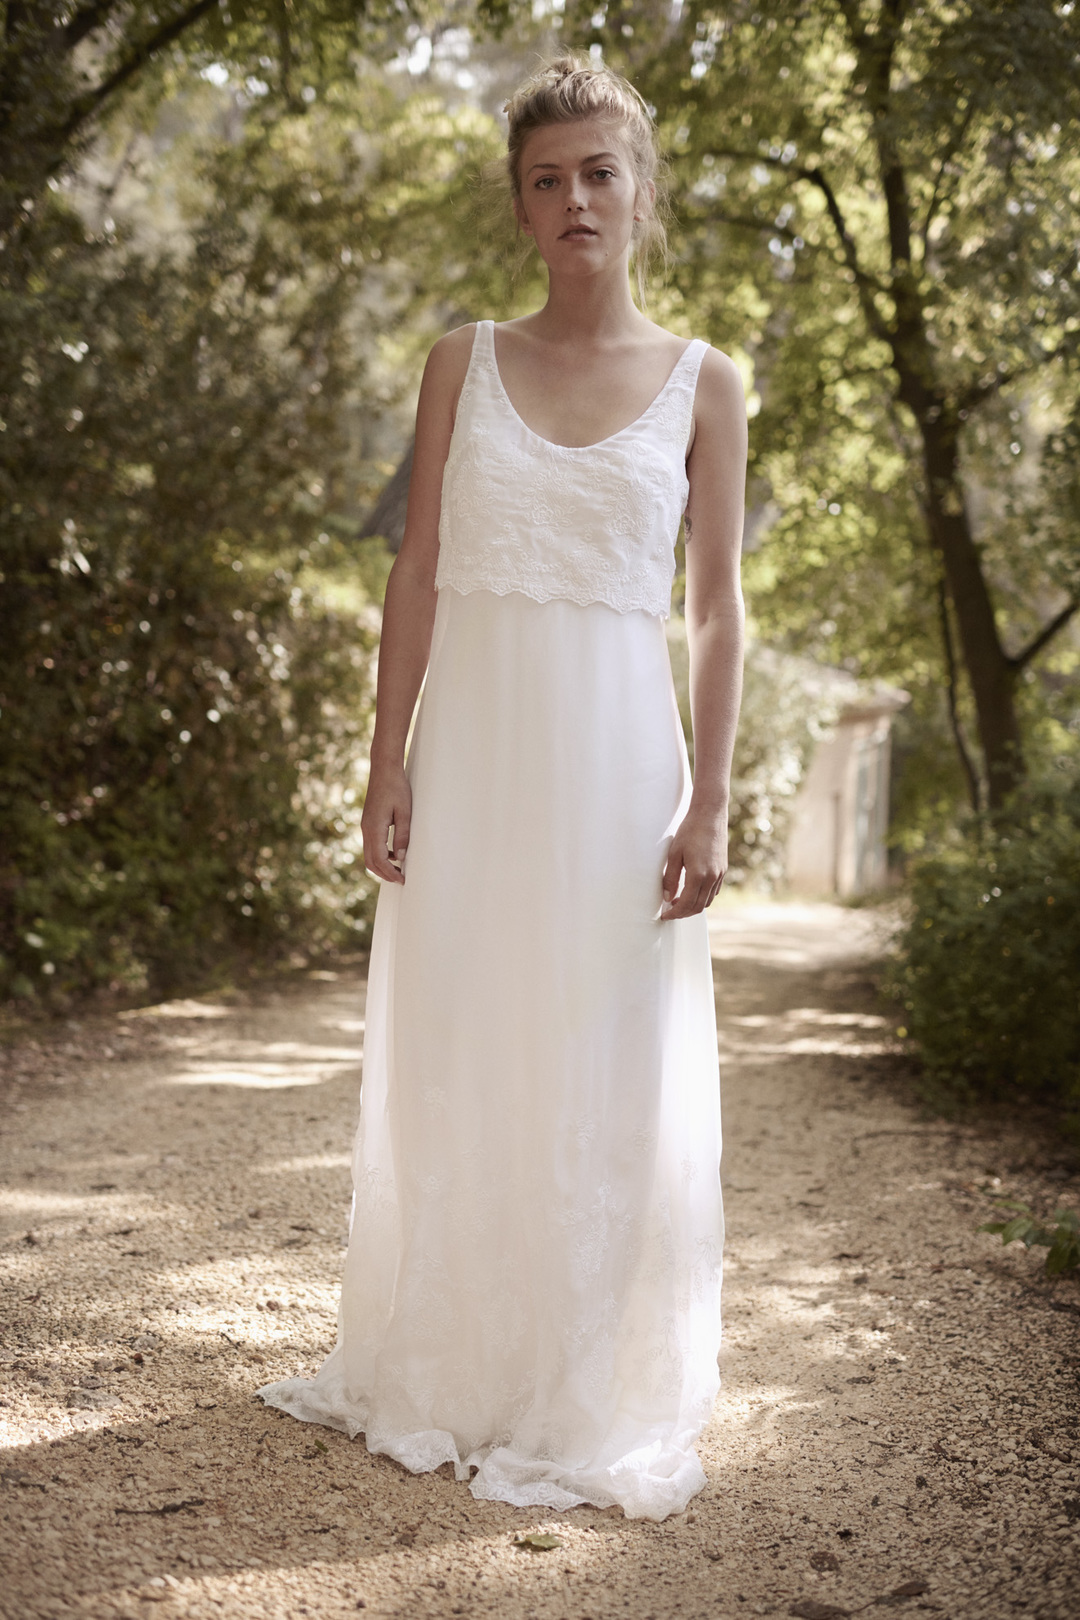 nameless grace dress photo